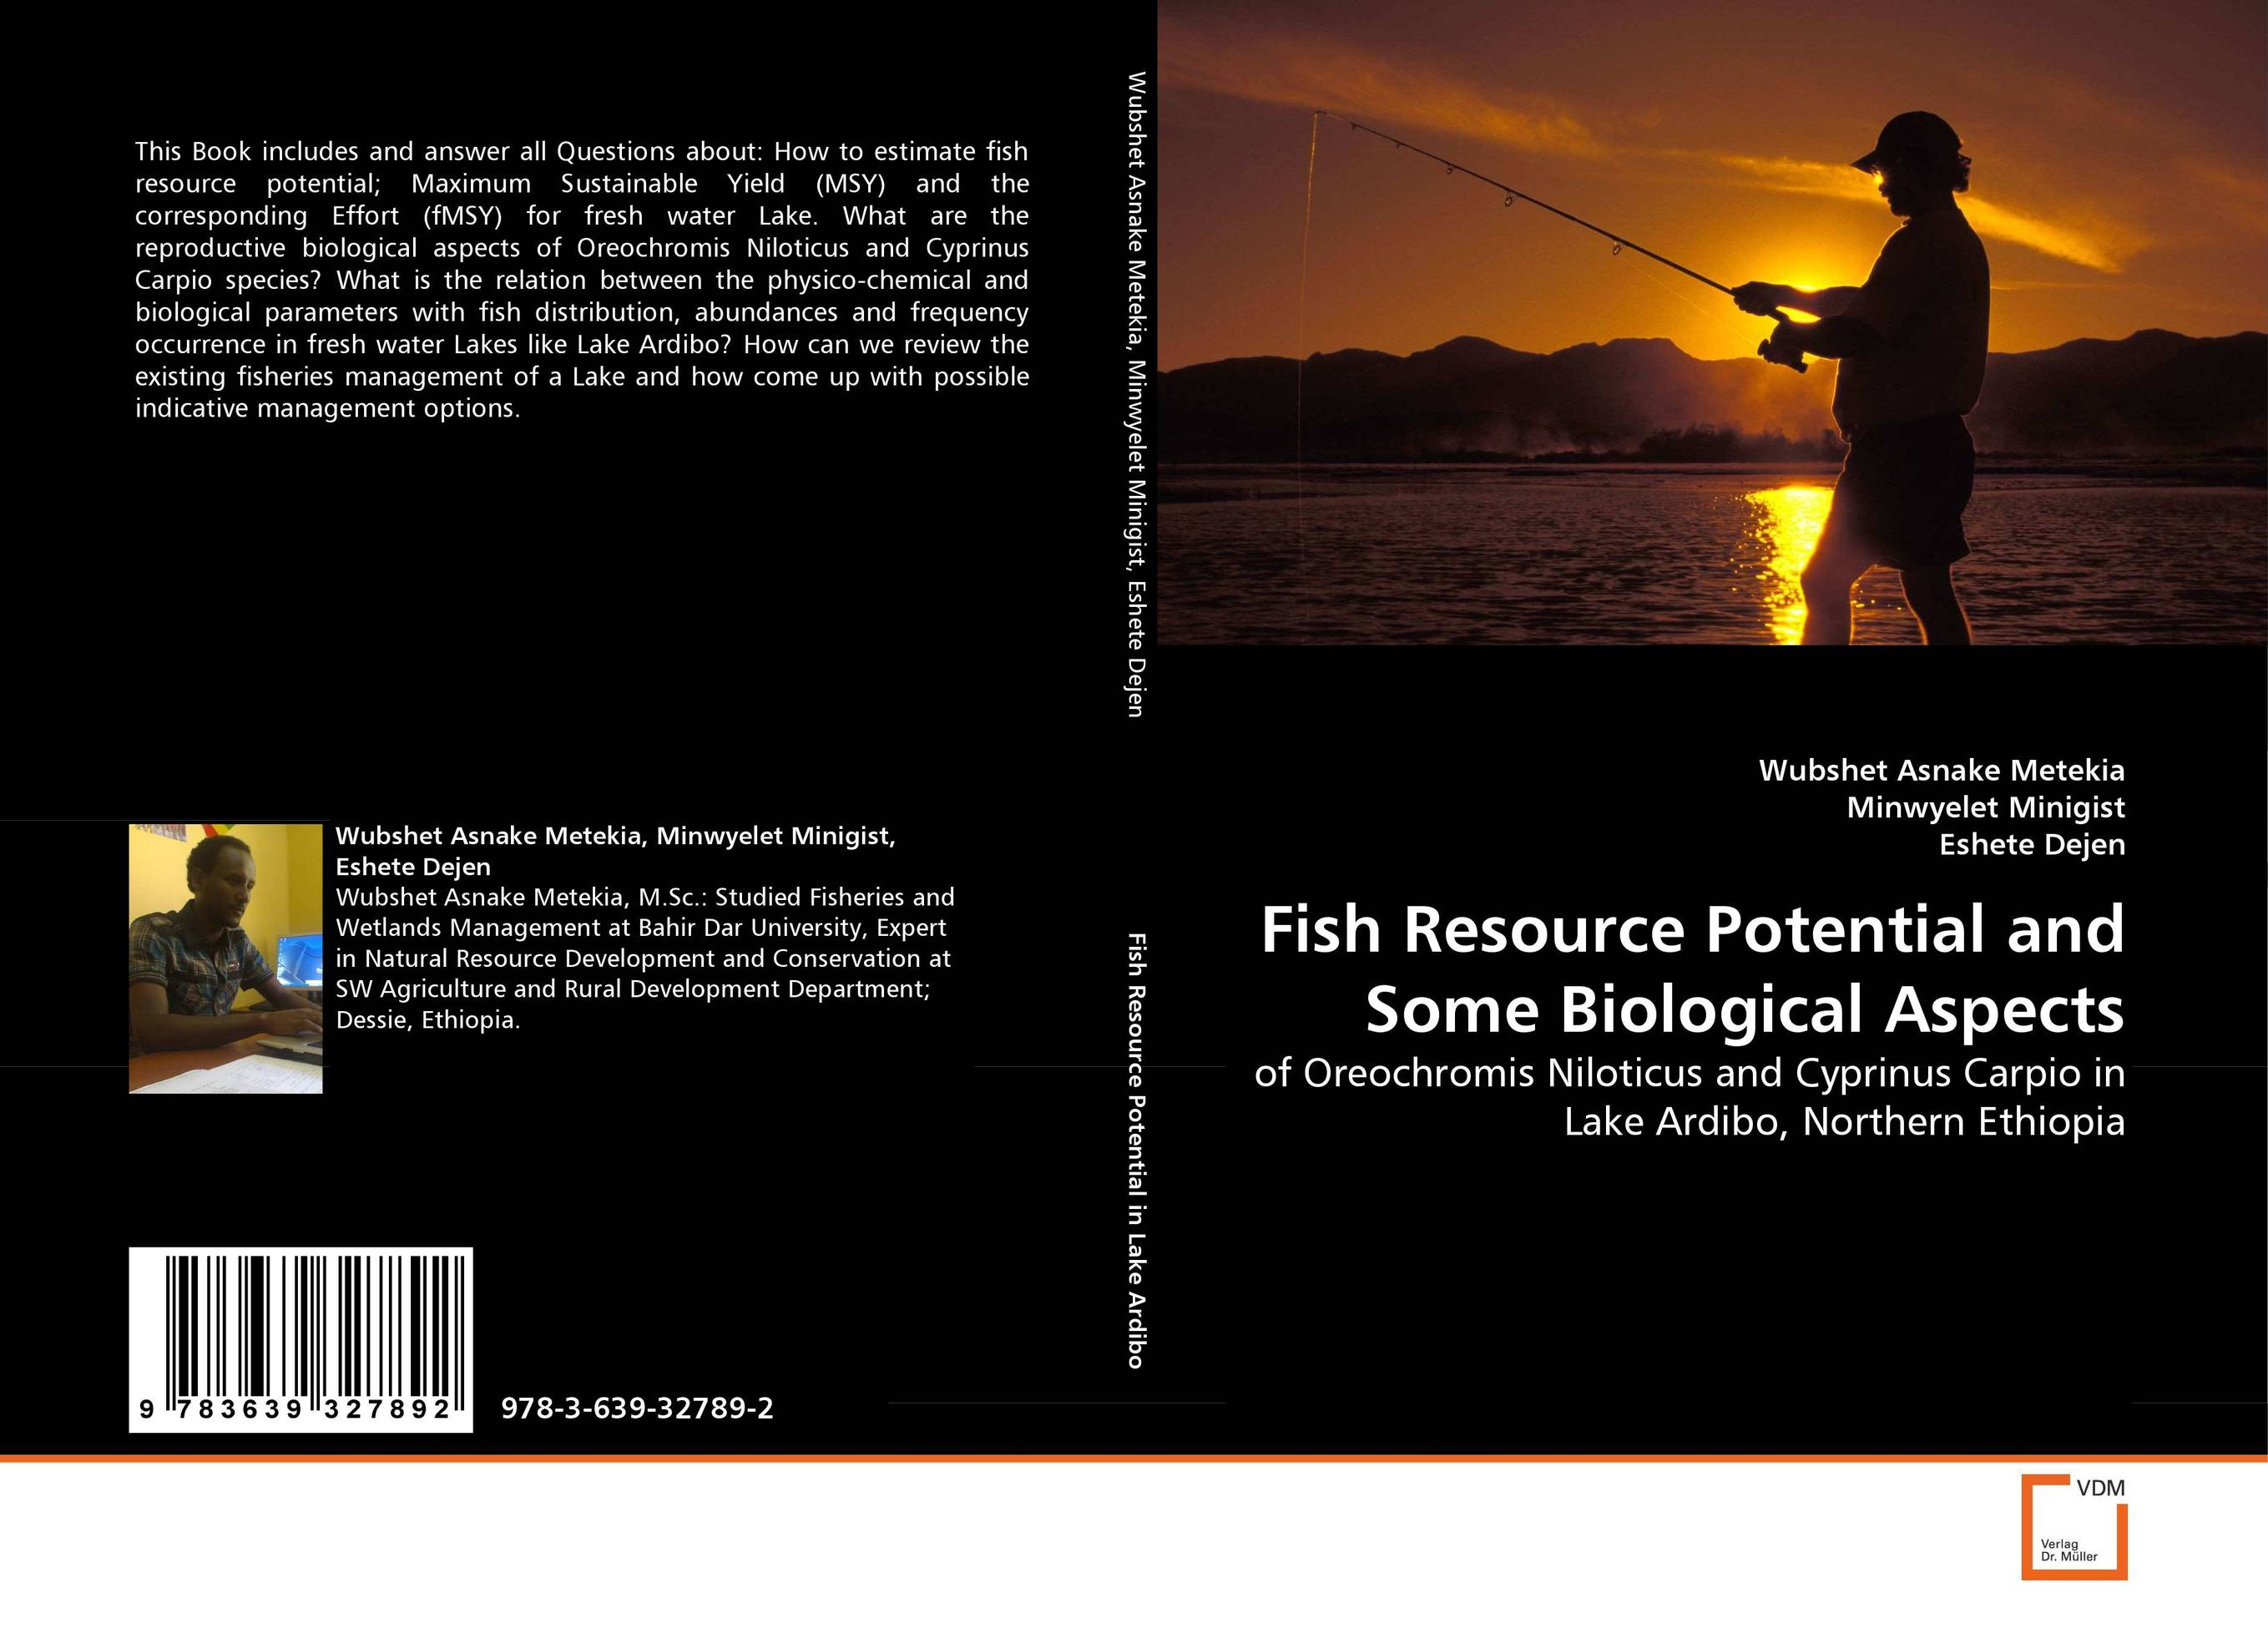 Fish Resource Potential and Some Biological Aspects цена